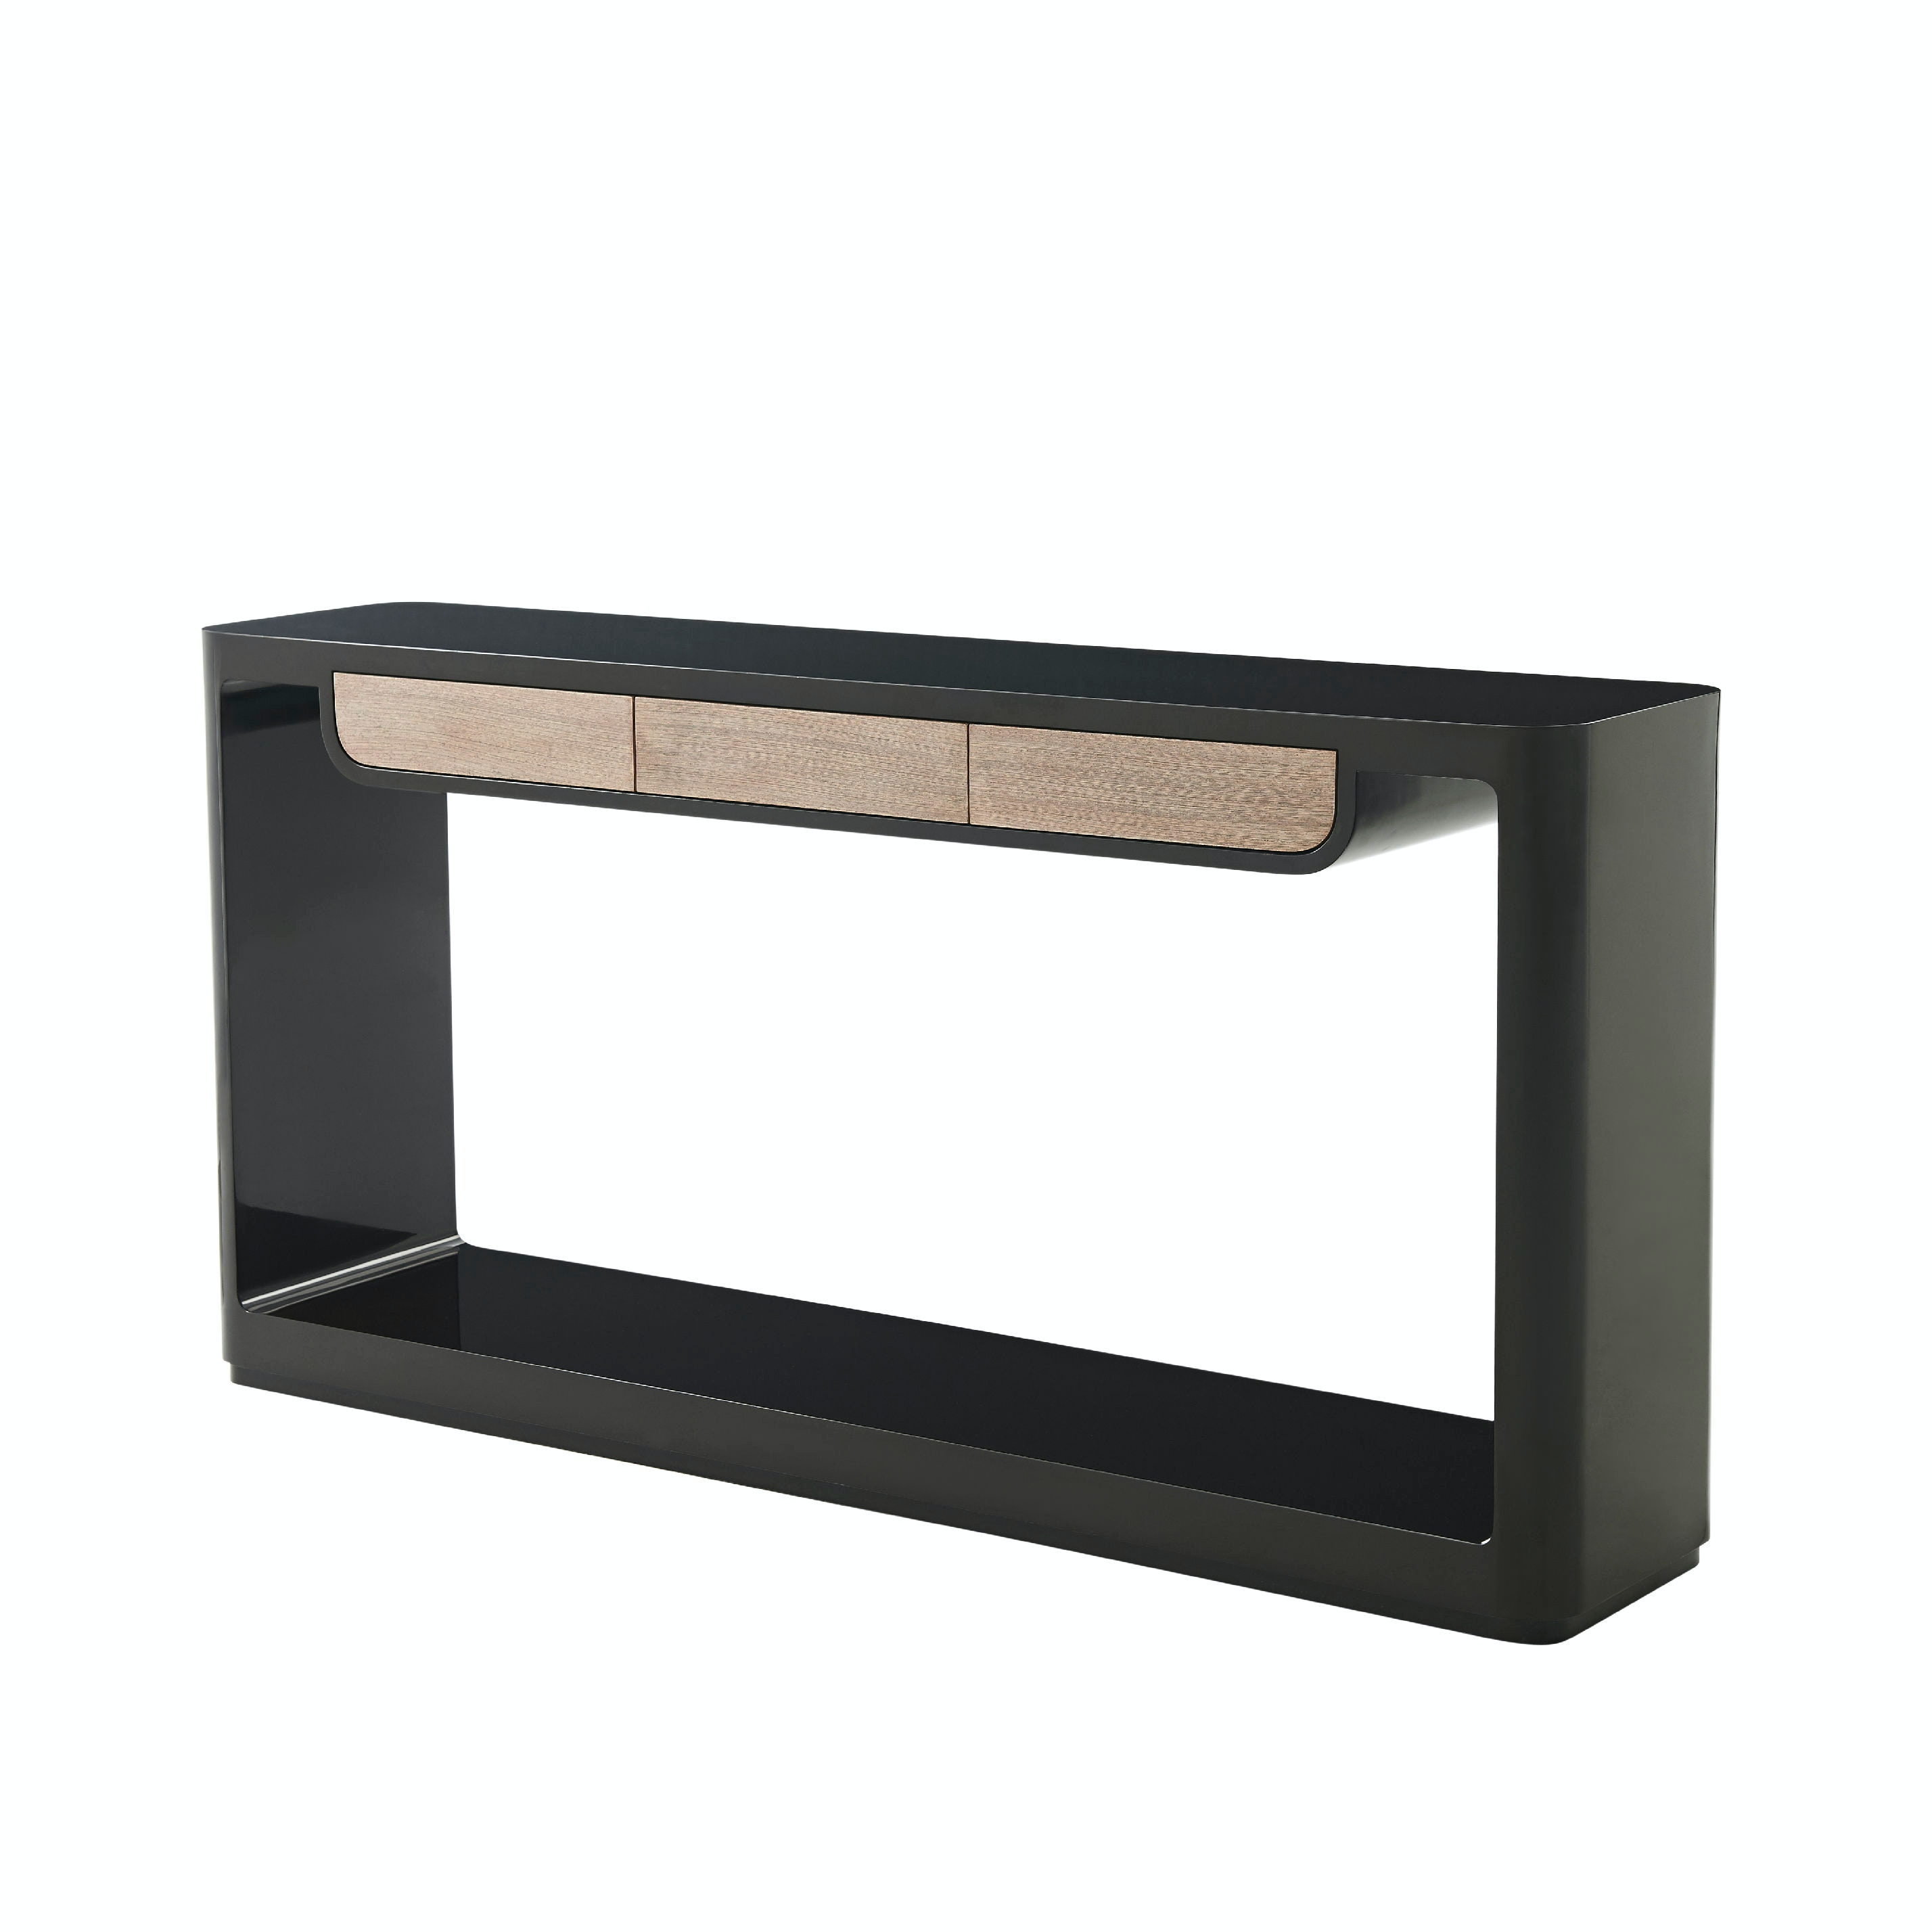 Genial Theodore Alexander Bauer Console MB53002